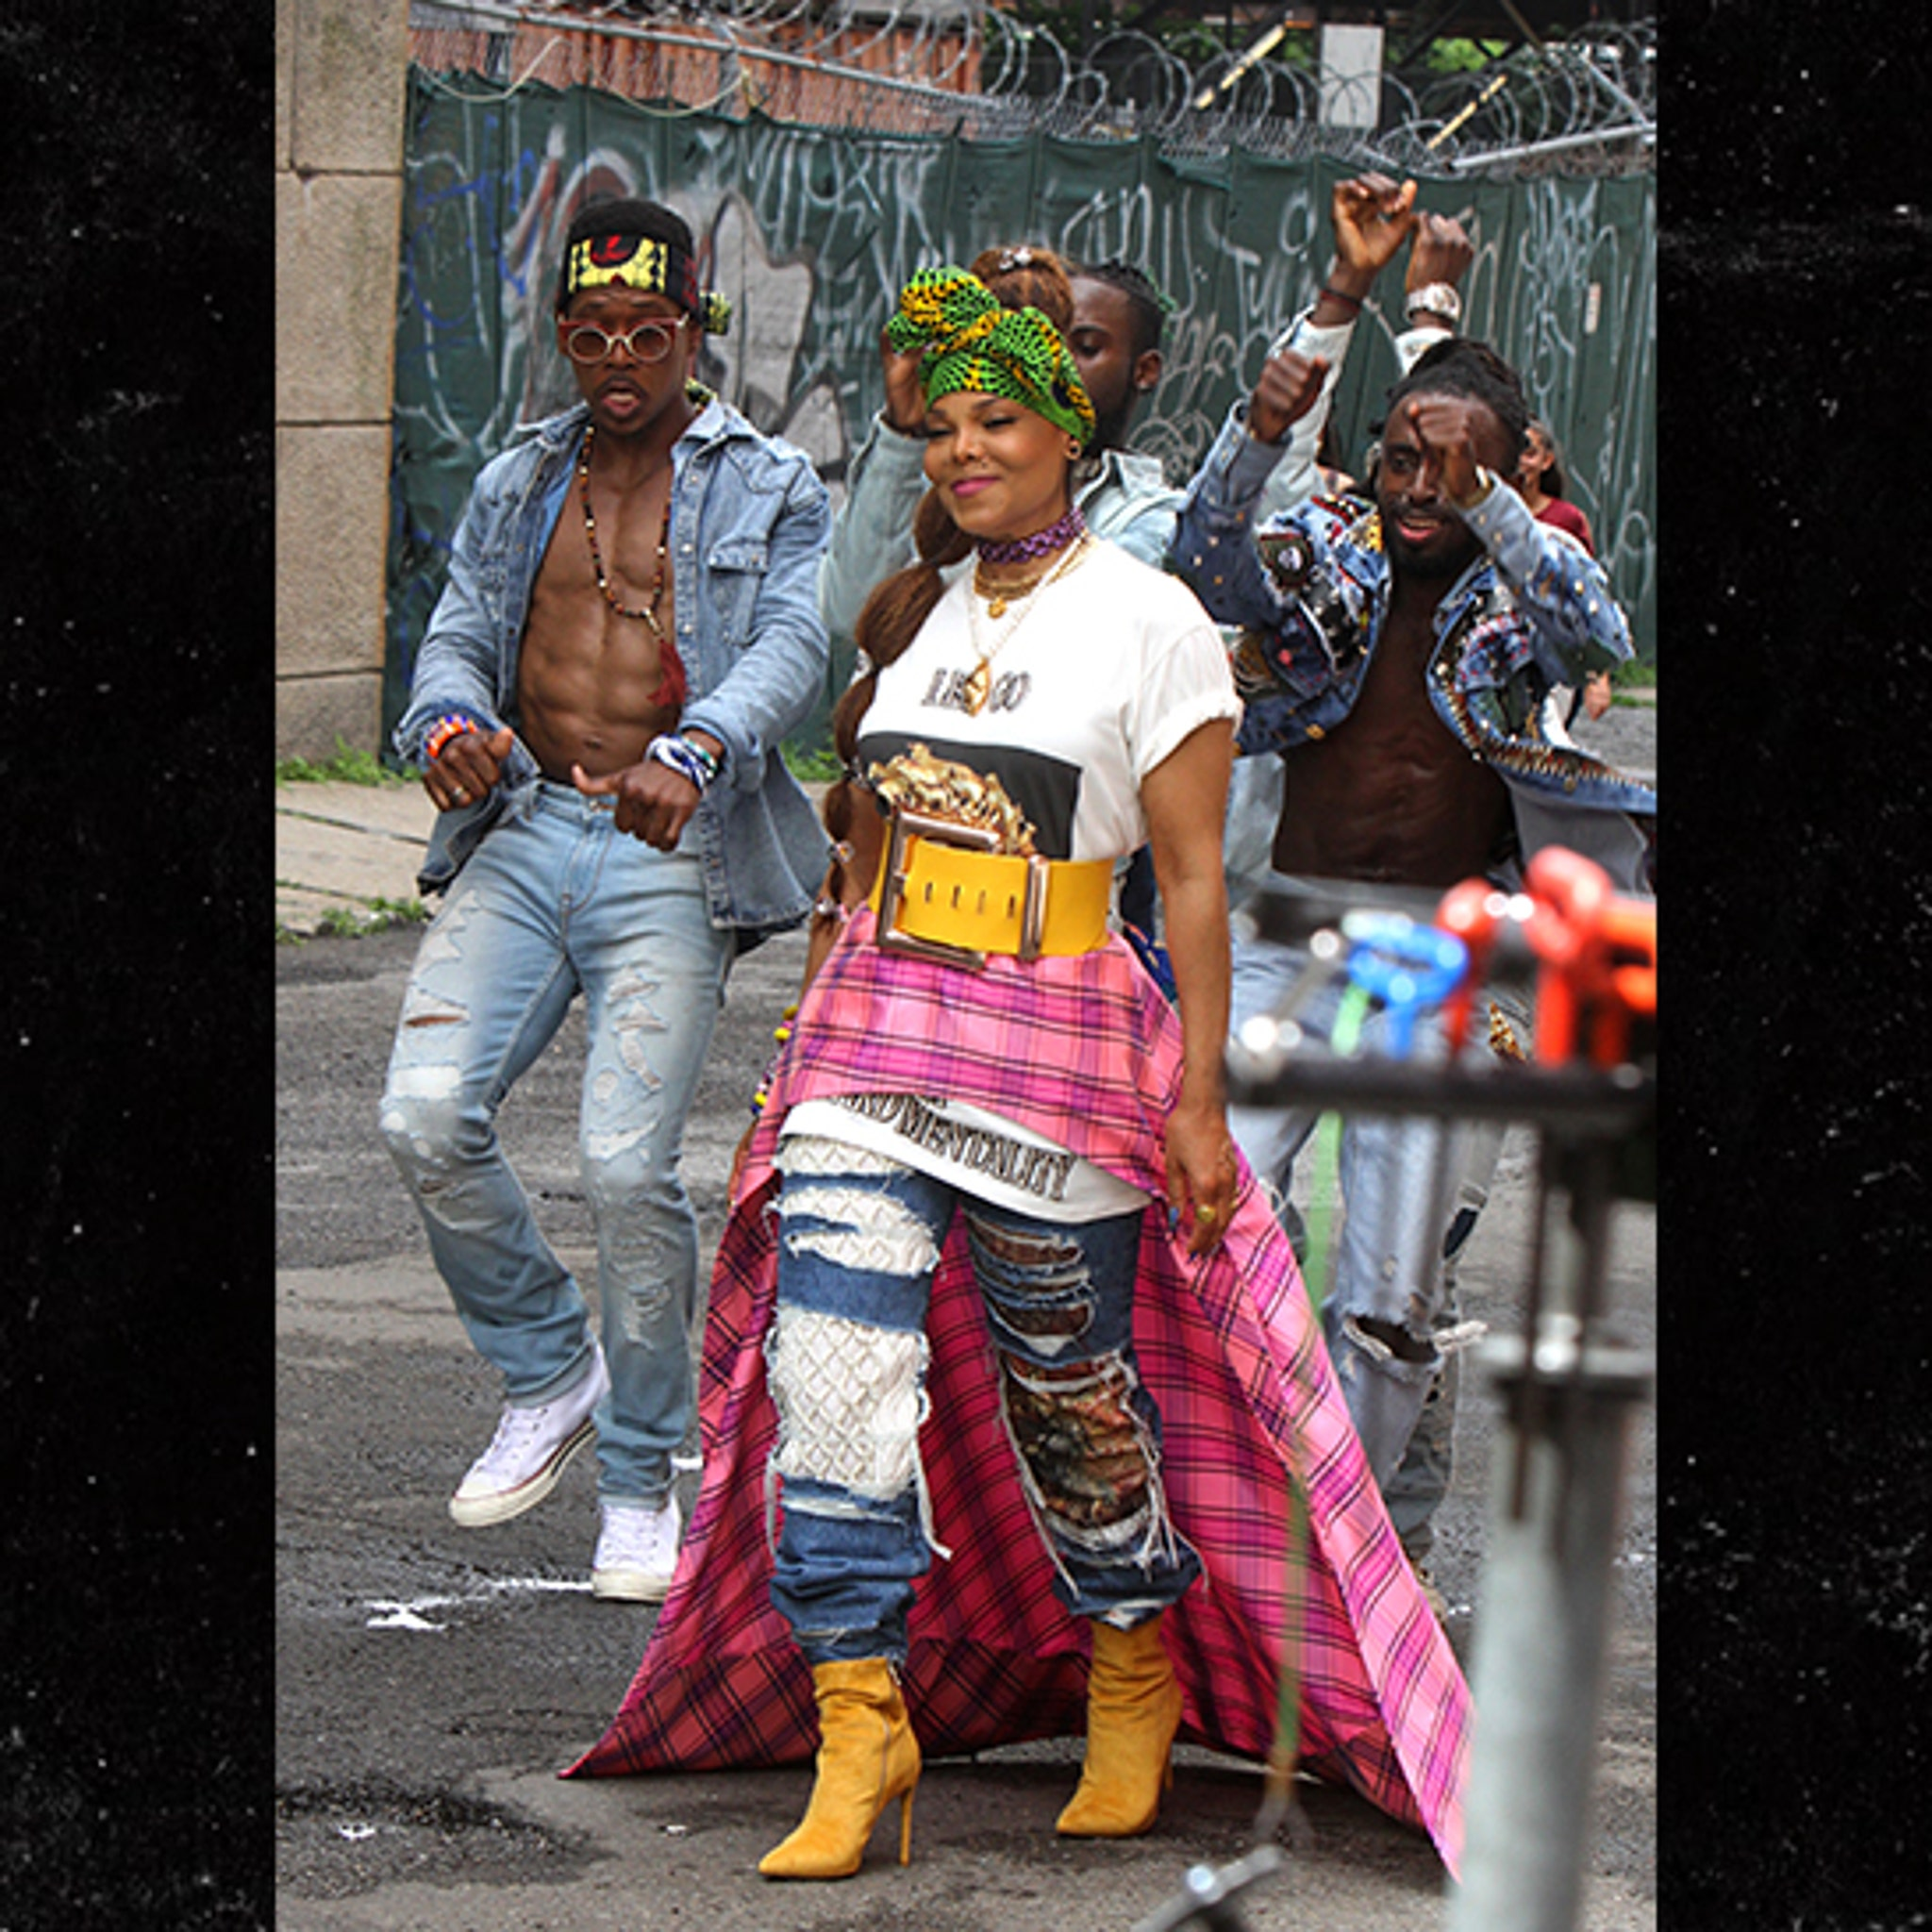 Janet Jackson Shoots New Music Video, But Keeps the Music